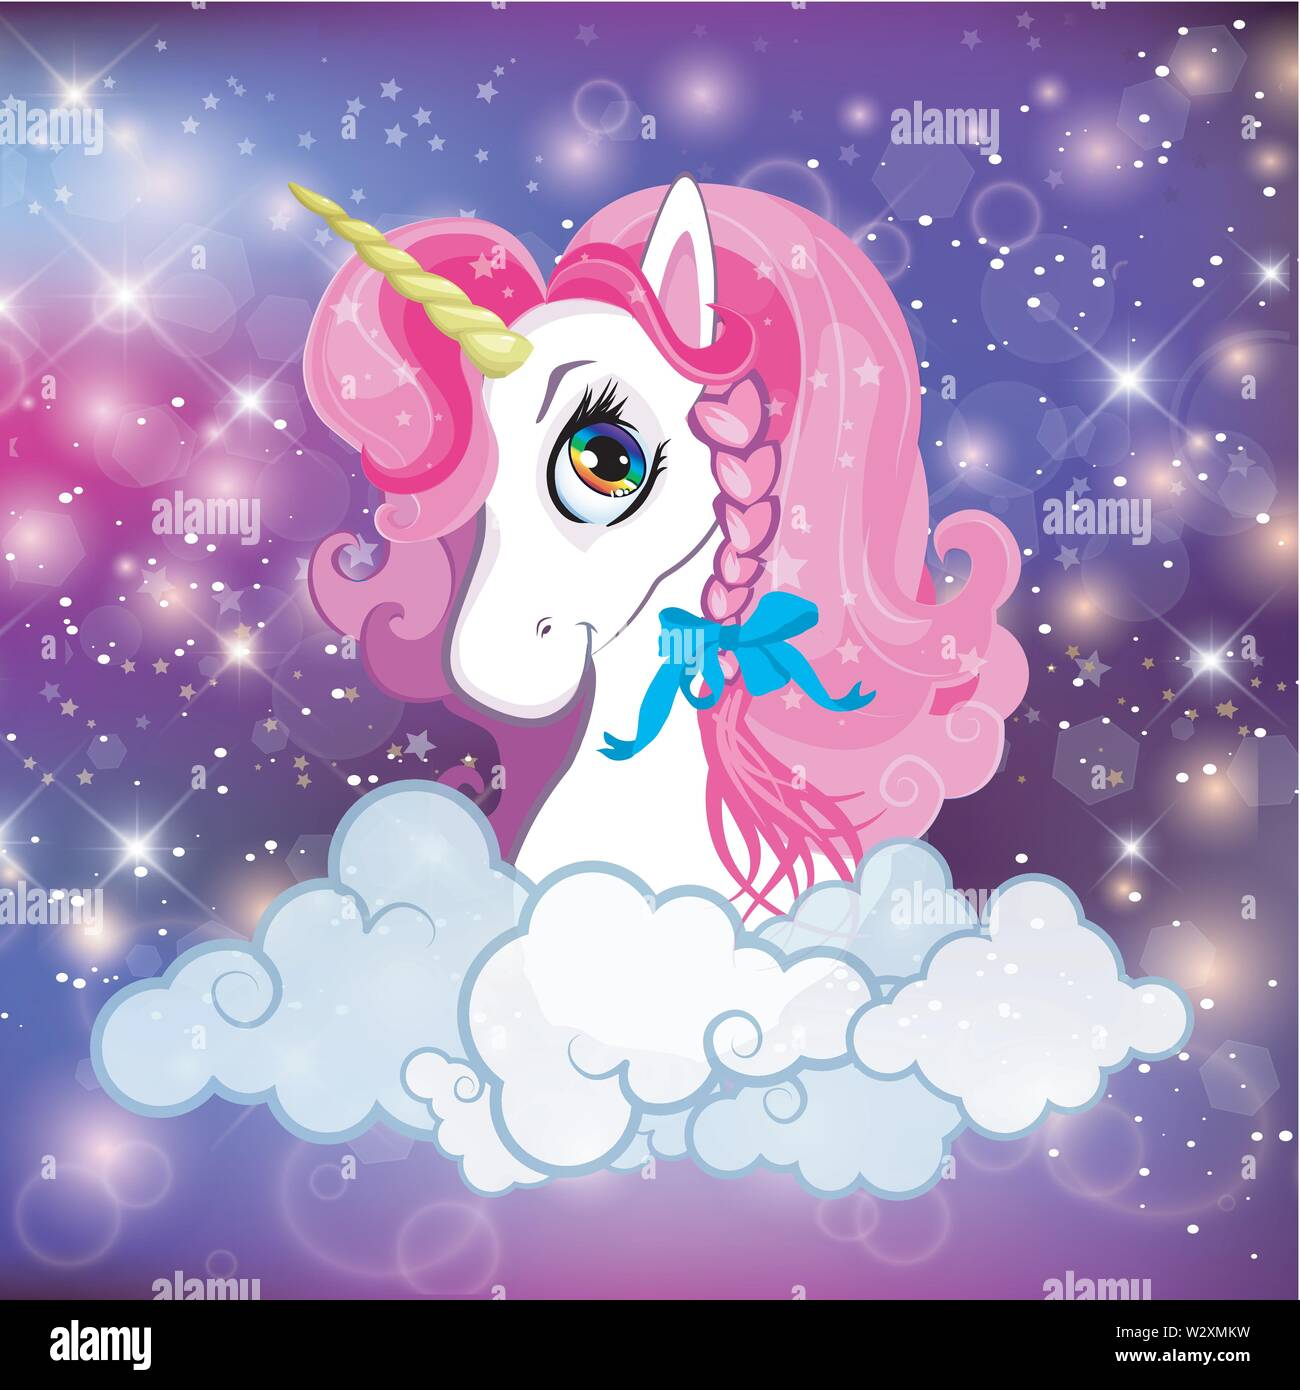 unicorn head with pink mane portrait on rainbow mesh kawaii universe galaxy space or night sky holographic background clouds magic sparkles stars W2XMKW